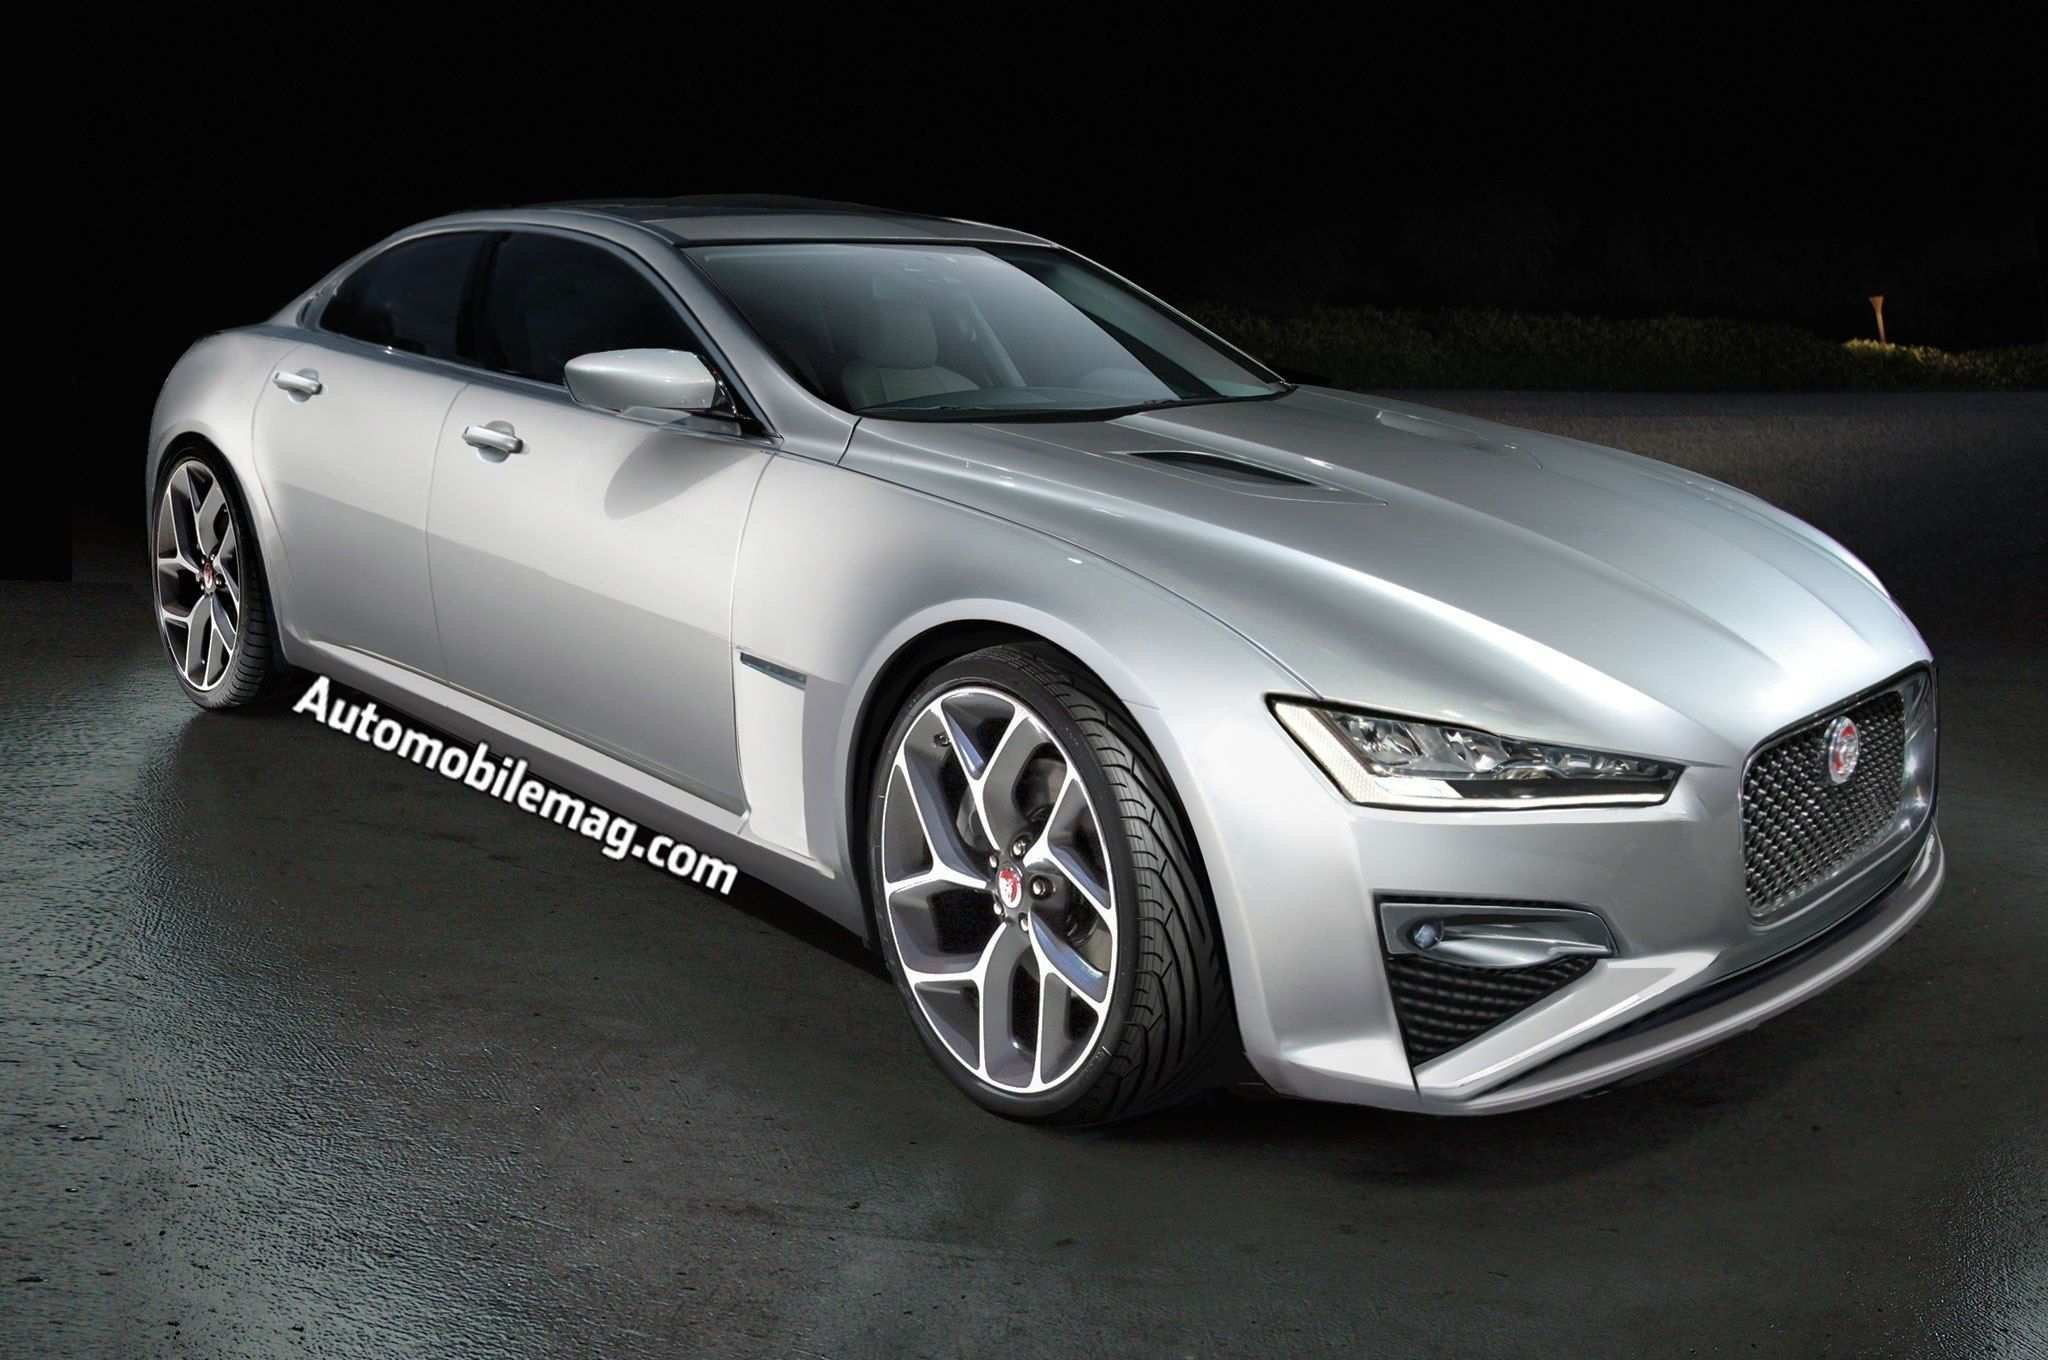 51 A Jaguar Concept 2020 Exterior And Interior